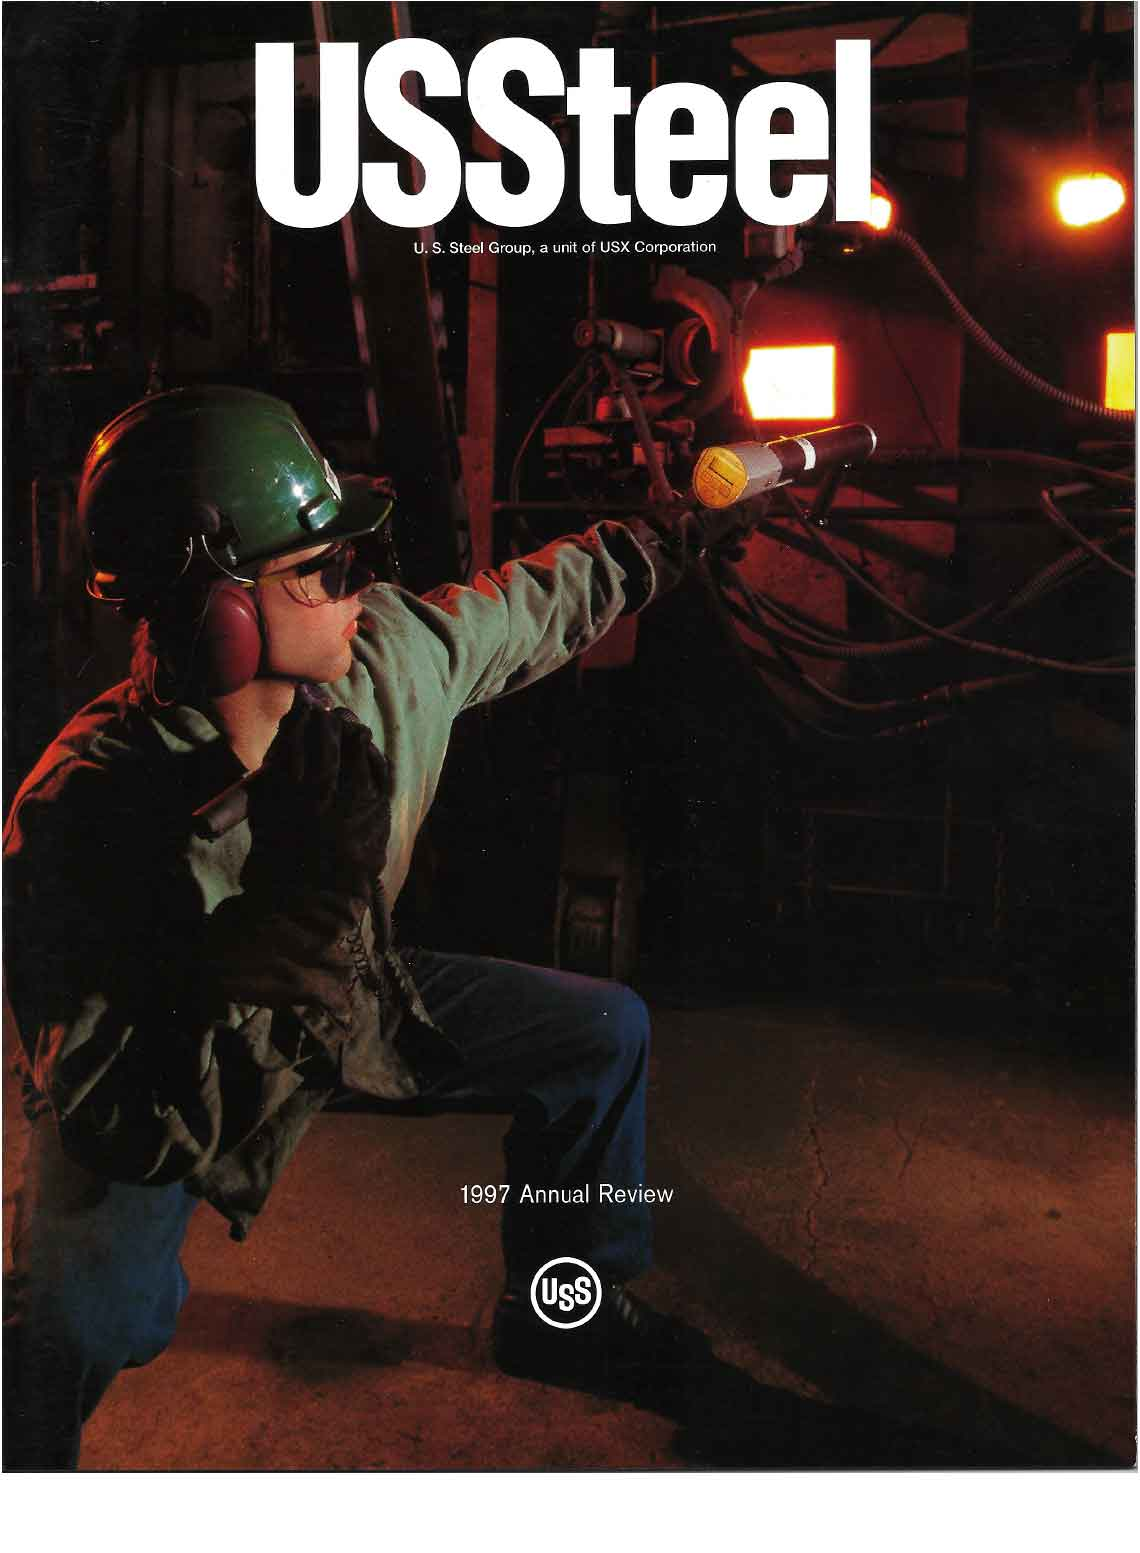 U.S. Steel 1997 Annual Review